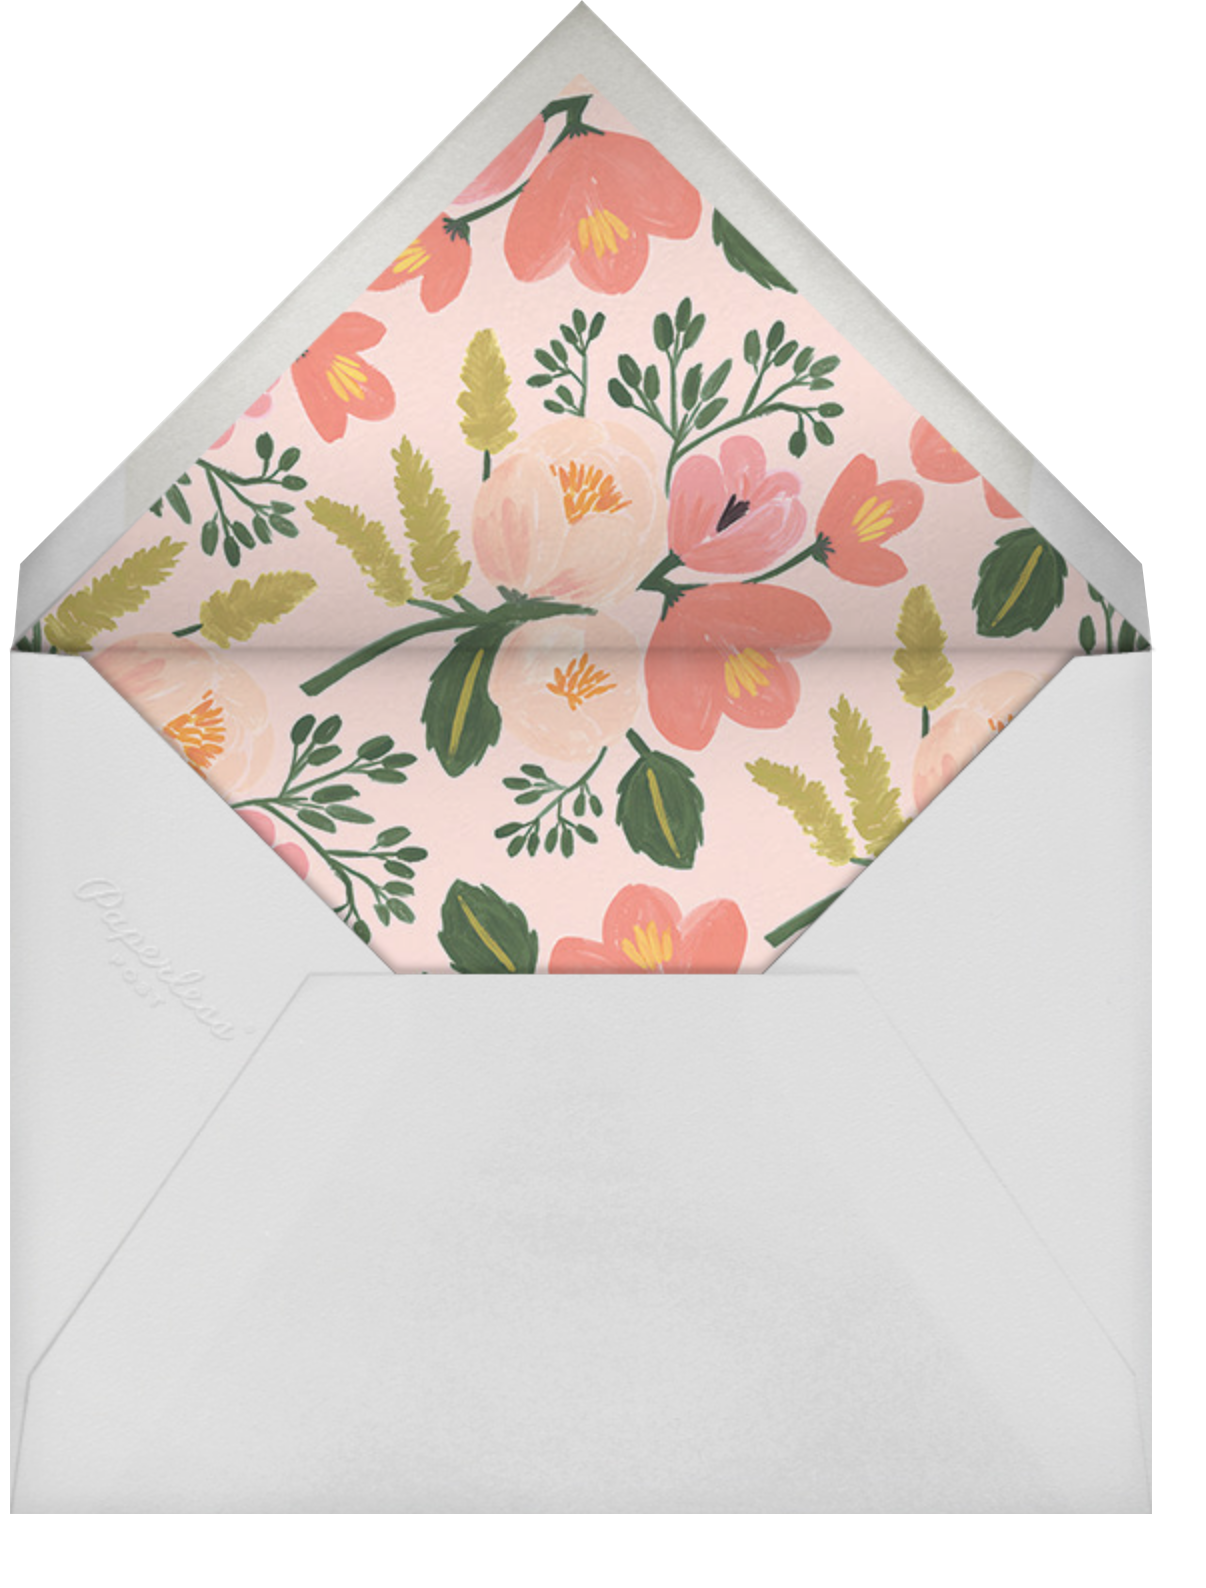 Botanic Year (Tall) - Oyster - Rifle Paper Co. - New Year's Eve - envelope back